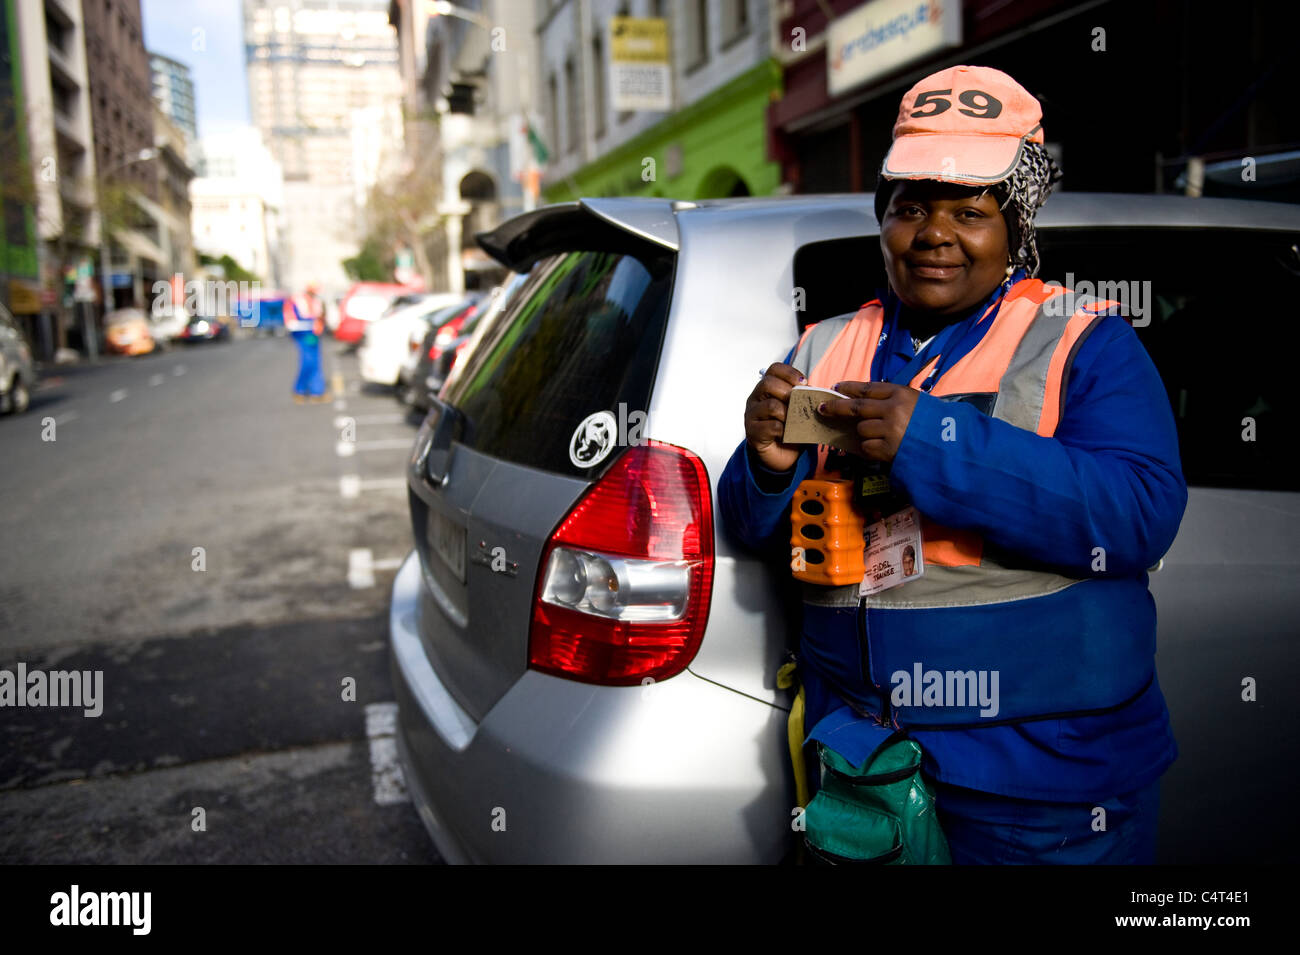 Marshal collecting parking fee in Cape Town South Africa - Stock Image